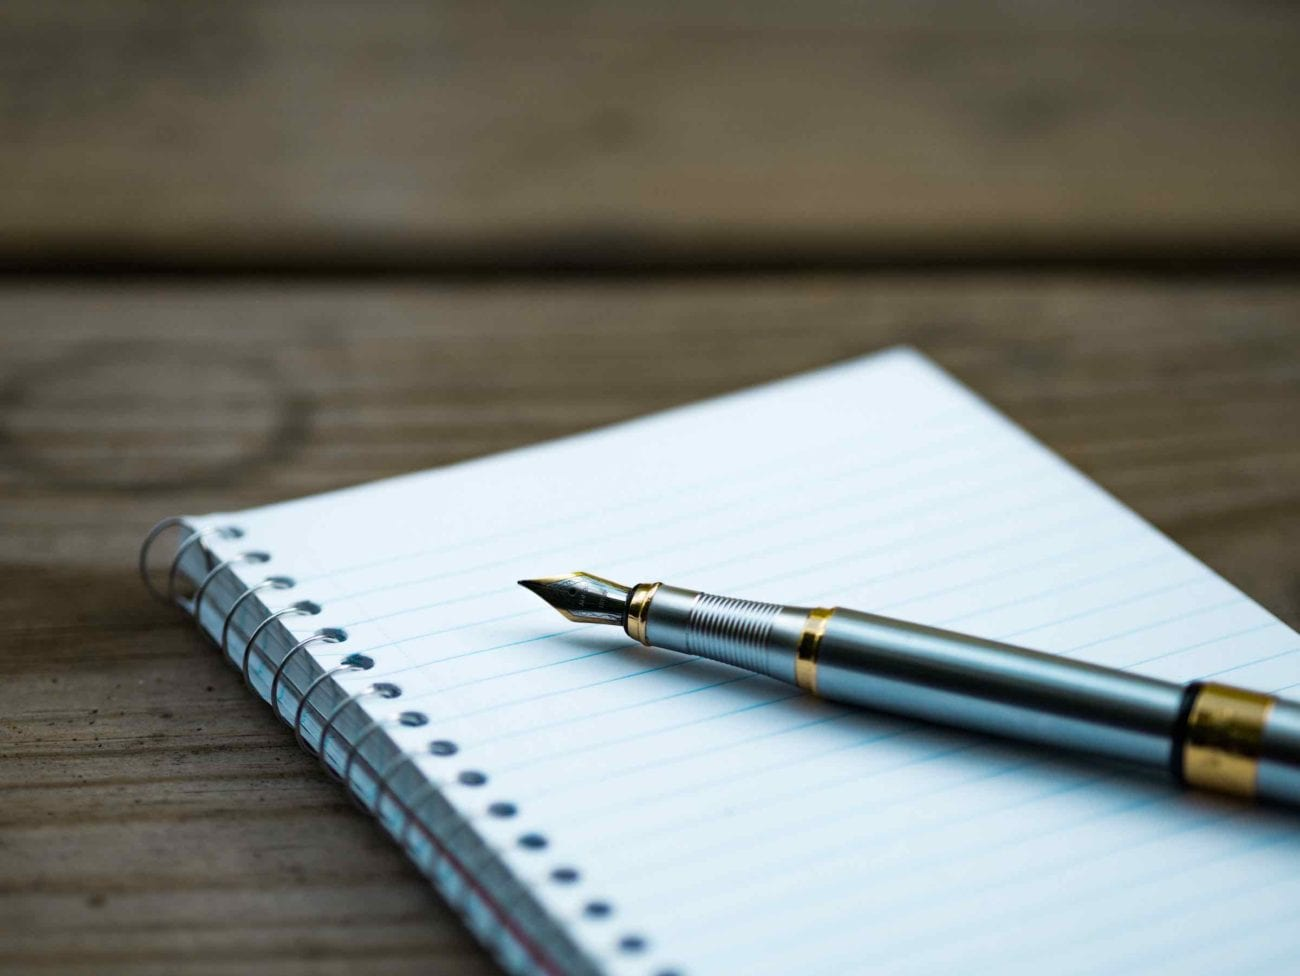 There are a few effective ways to overcome writer's block which will hopefully help you to get back on track sooner rather than later.